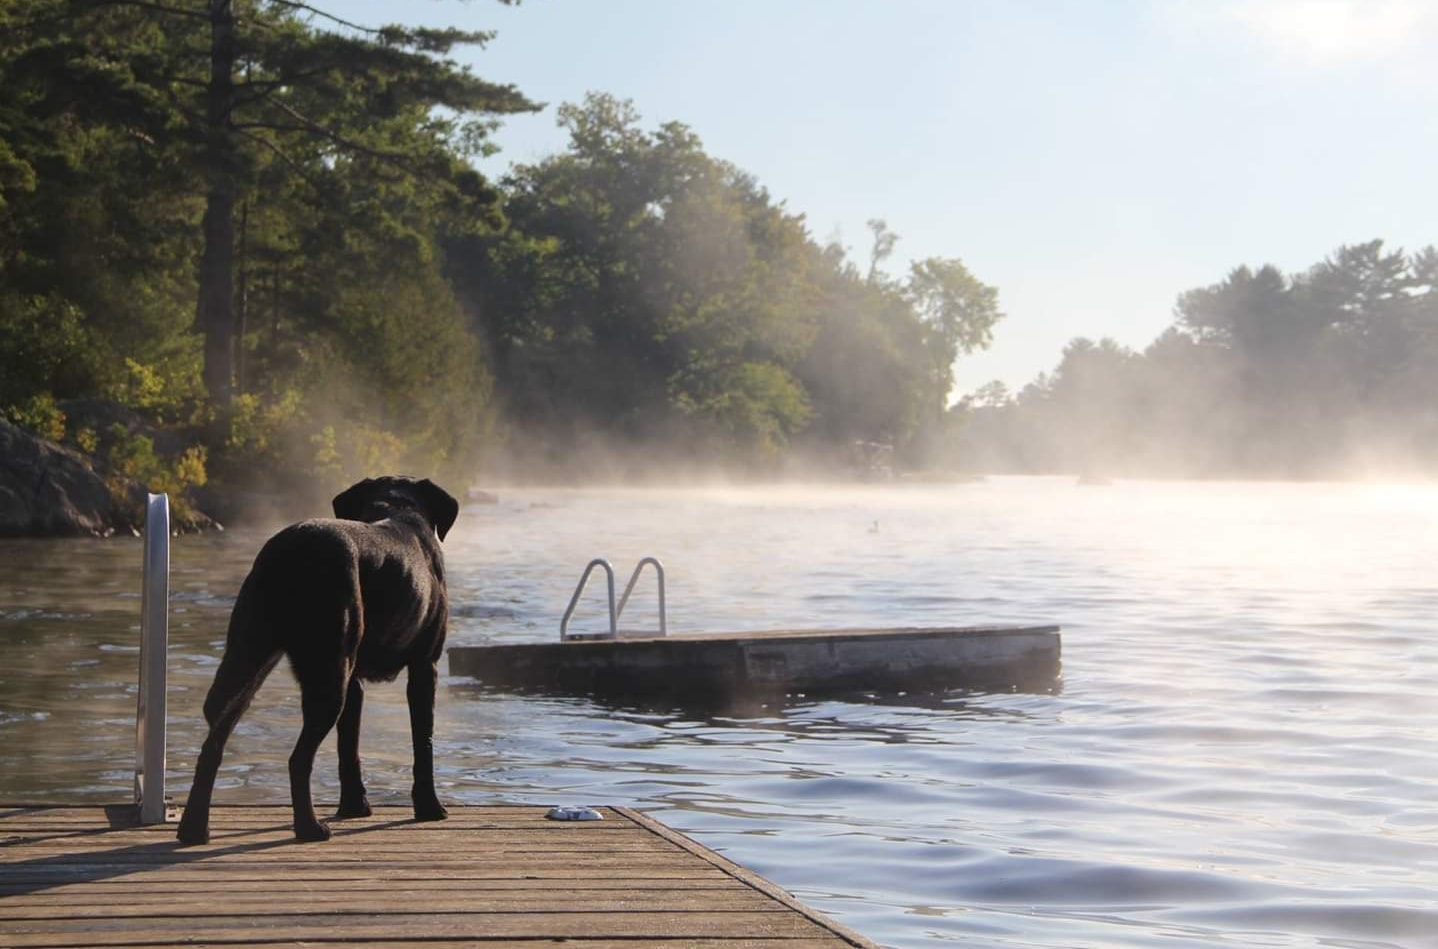 Image of a dog on a dock